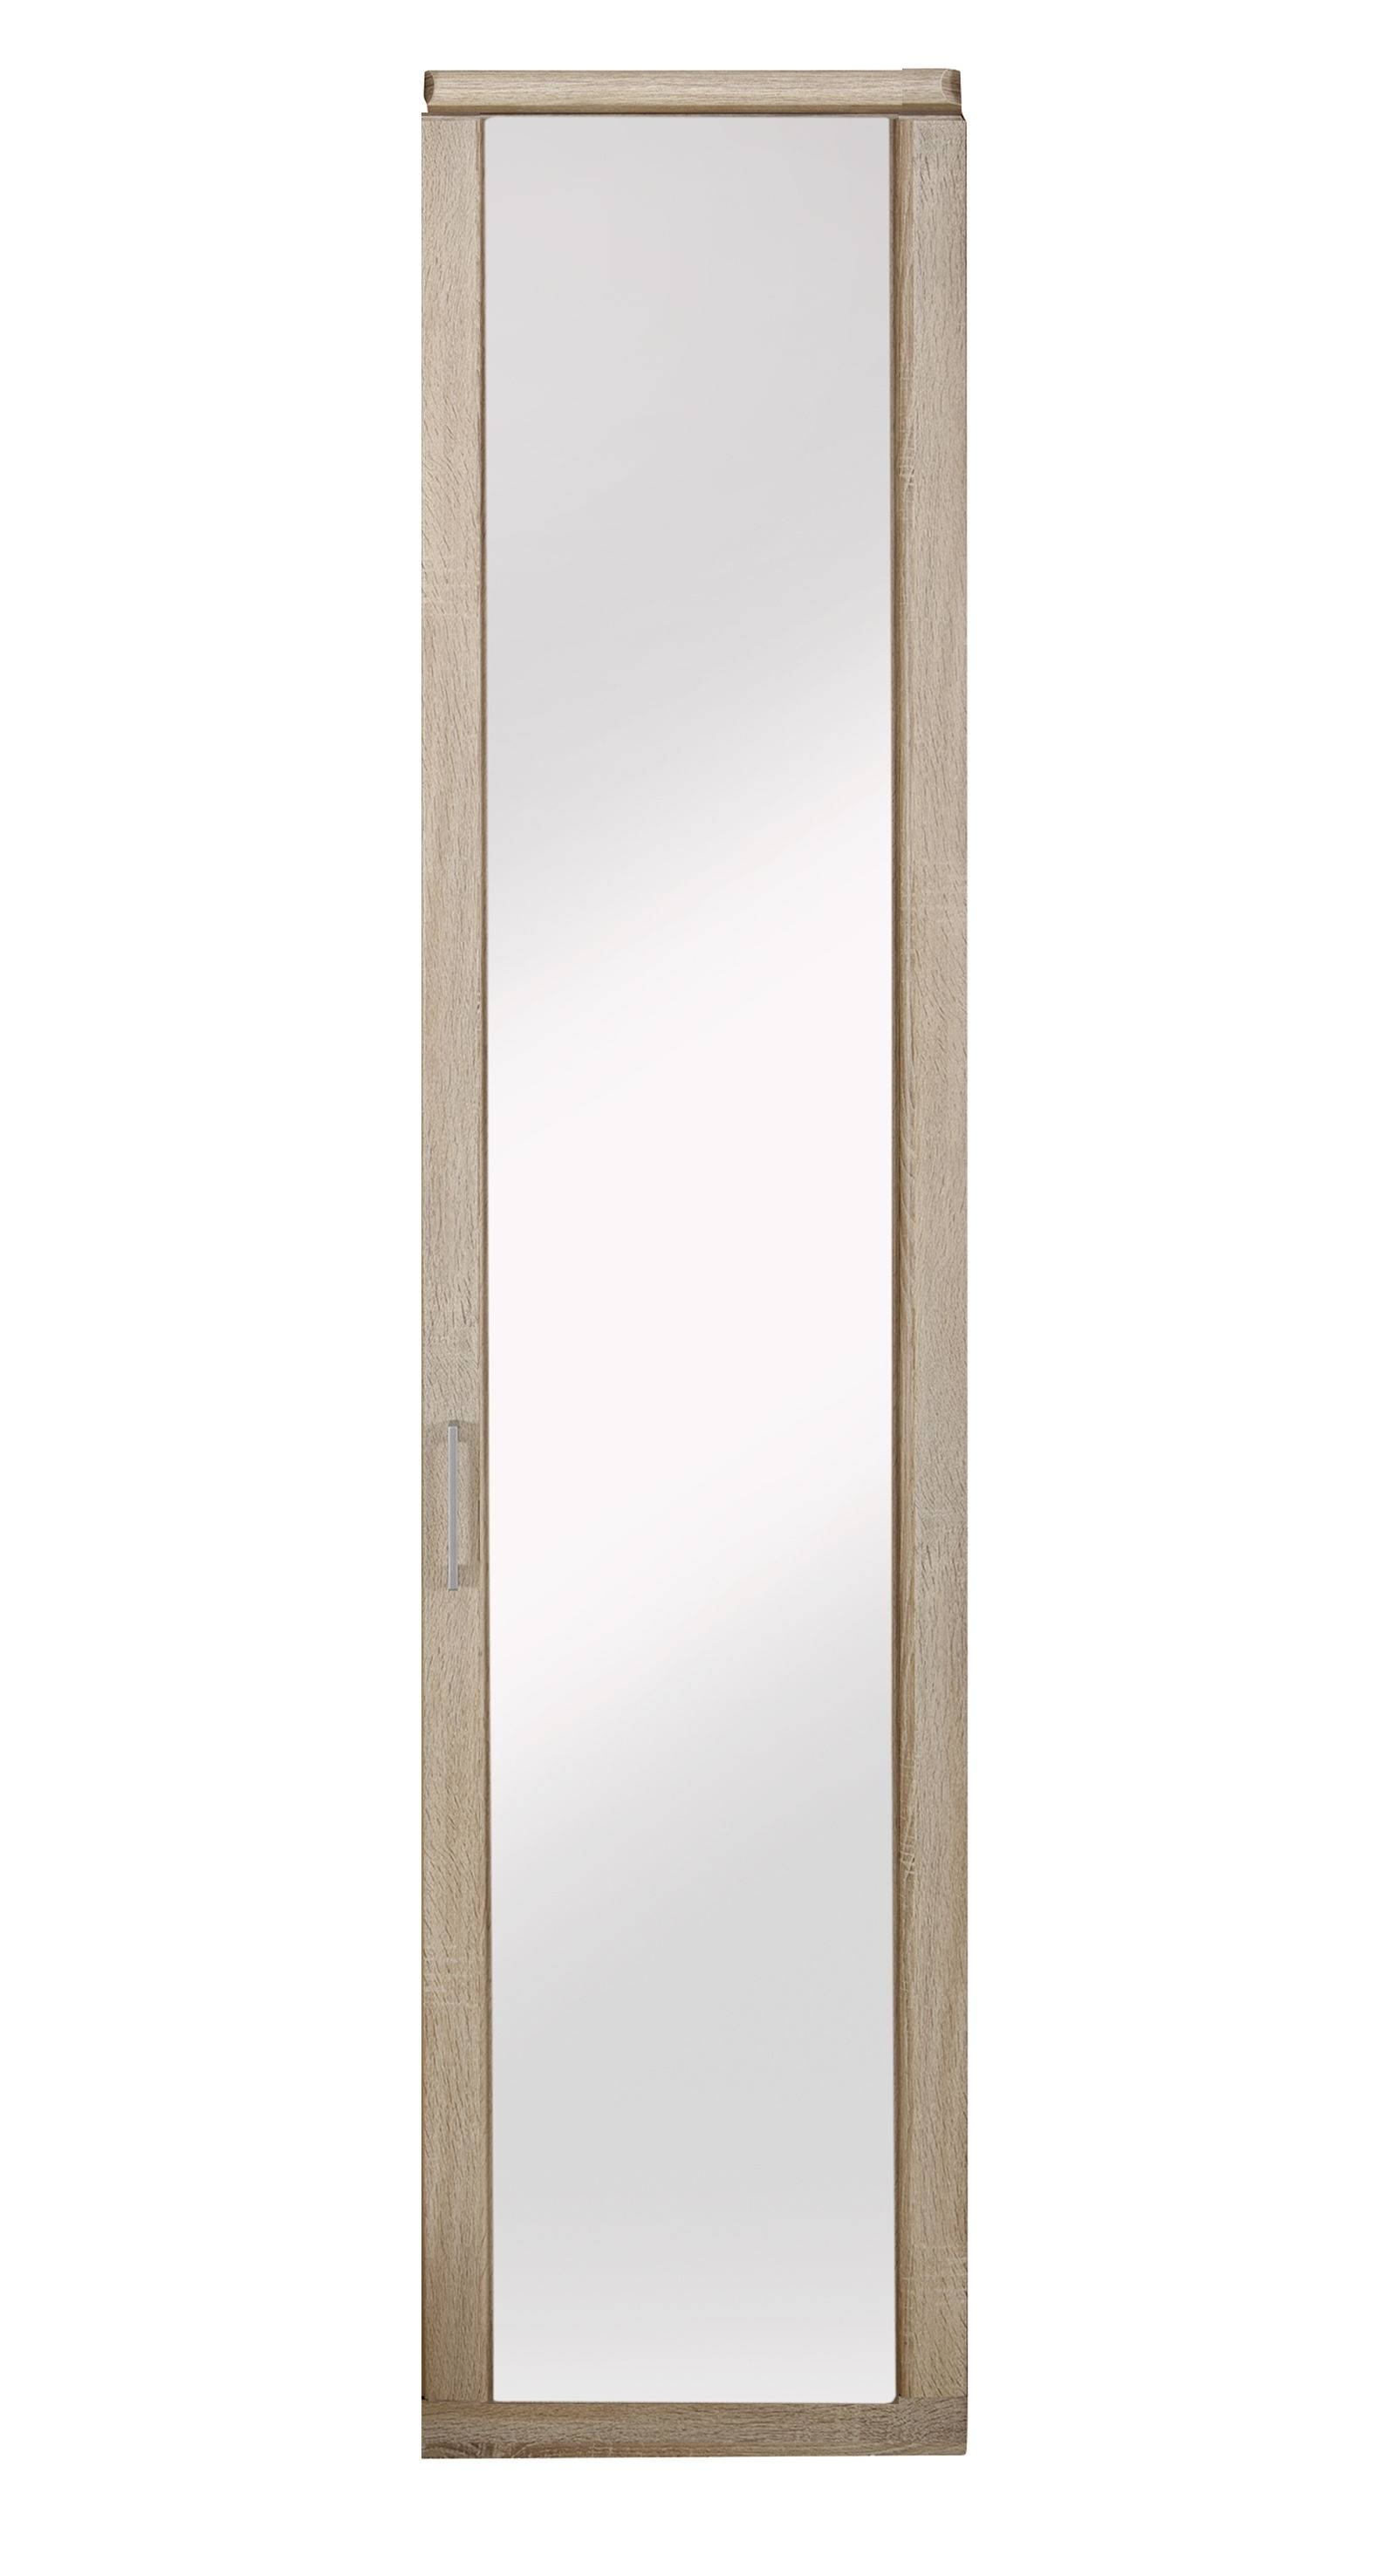 View Our Florida Range For Quality German-Made Furniture in 1 Door Mirrored Wardrobes (Image 9 of 15)